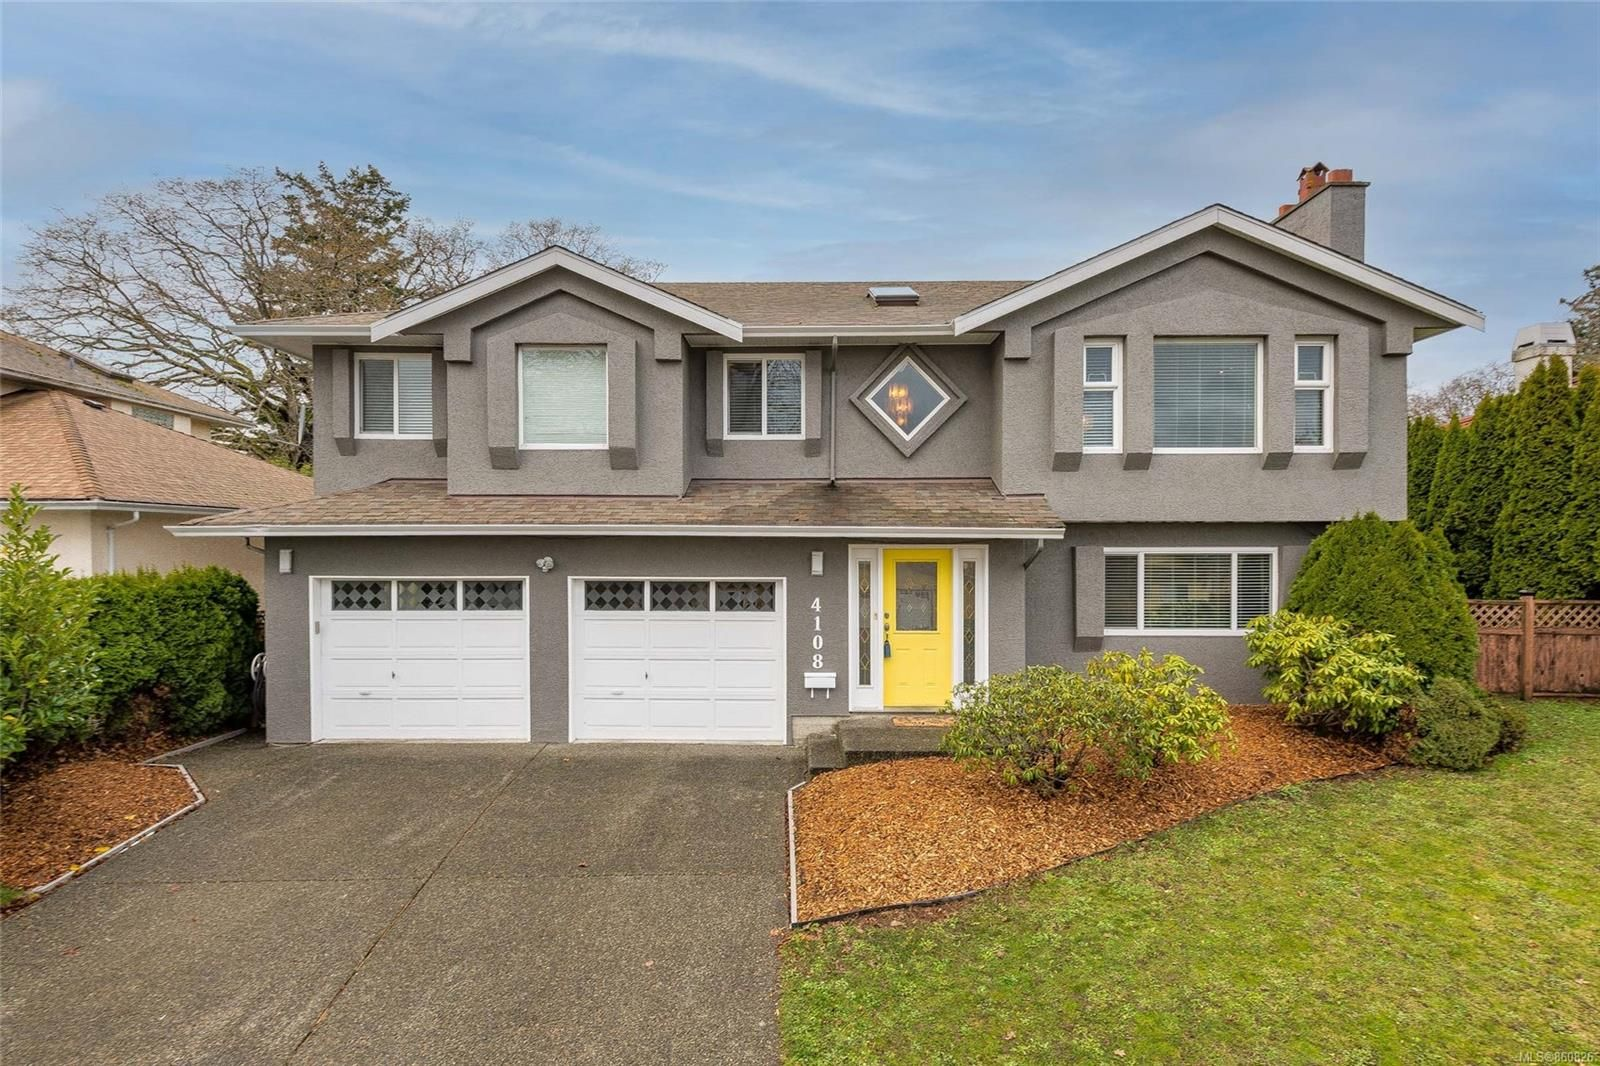 Main Photo: 4108 Larchwood Dr in : SE Lambrick Park House for sale (Saanich East)  : MLS®# 860826